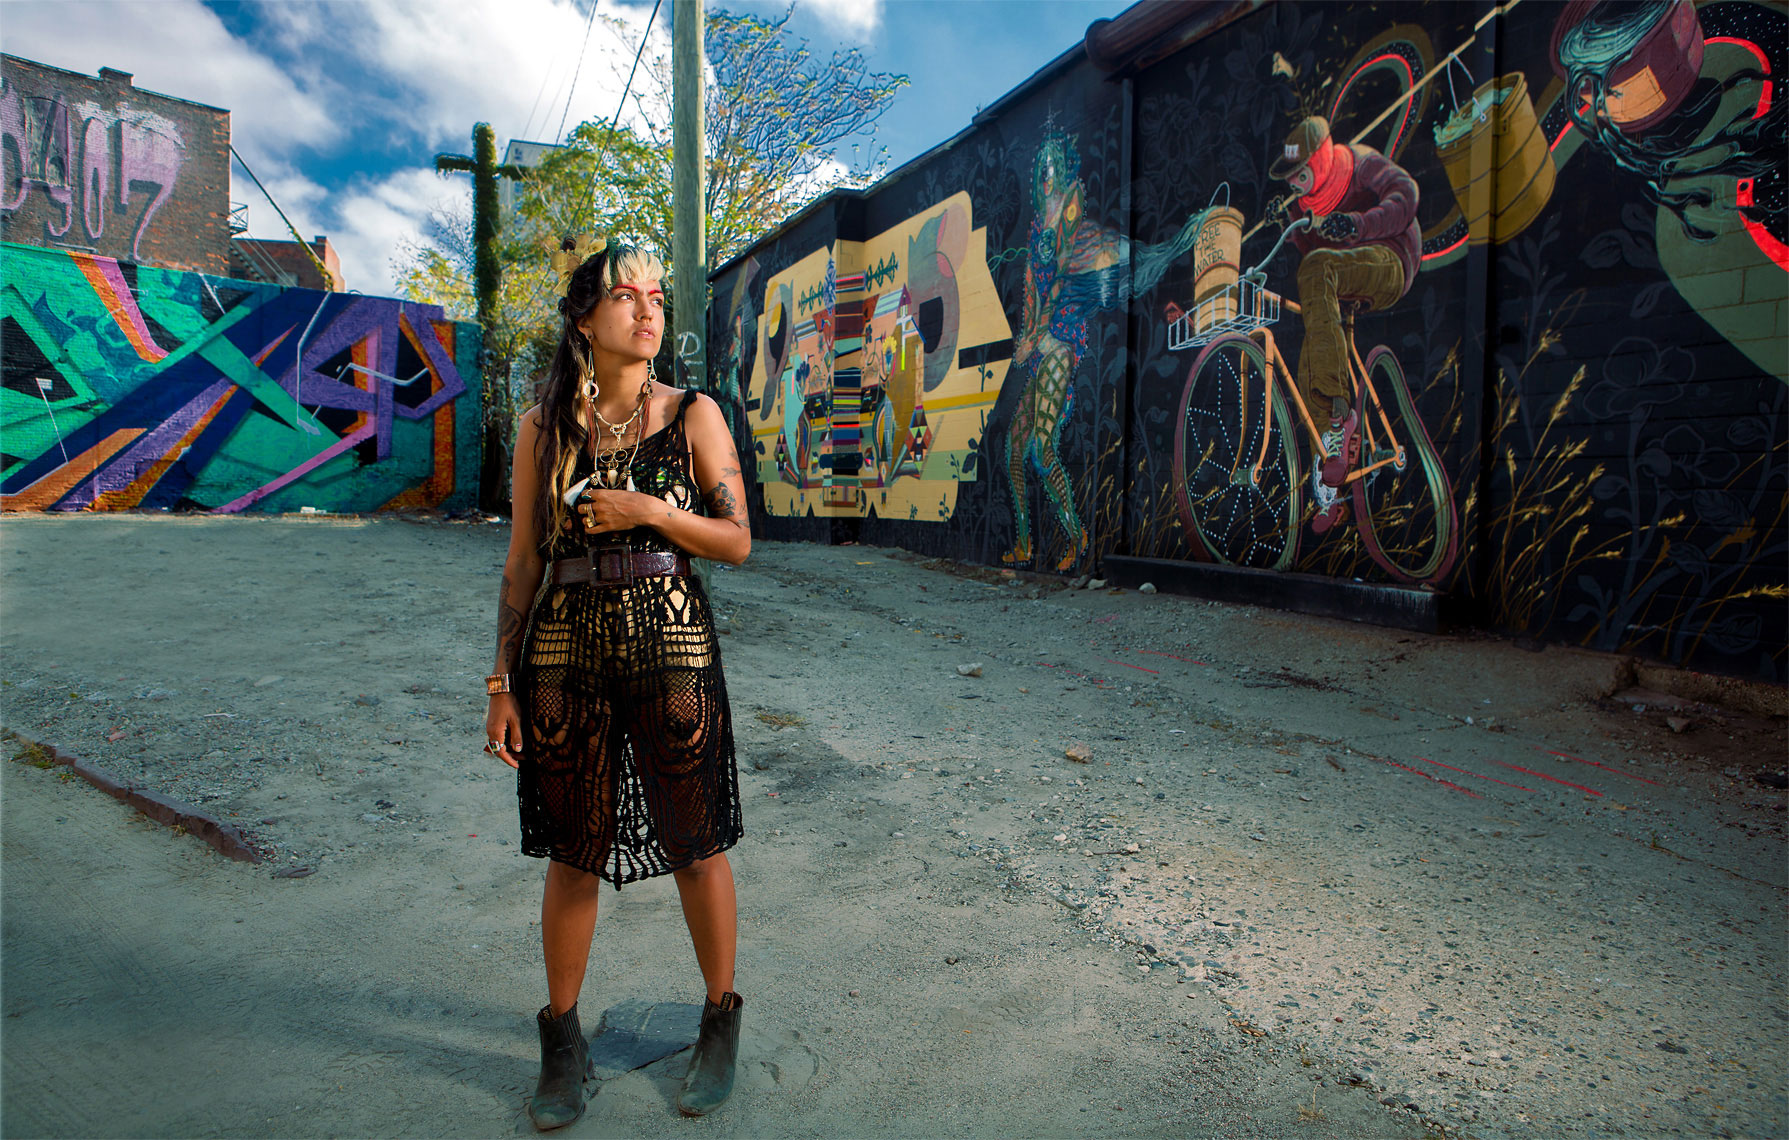 detroit-environmental-portrait-of-artist-monica-canilao-photographer-scott-stewart